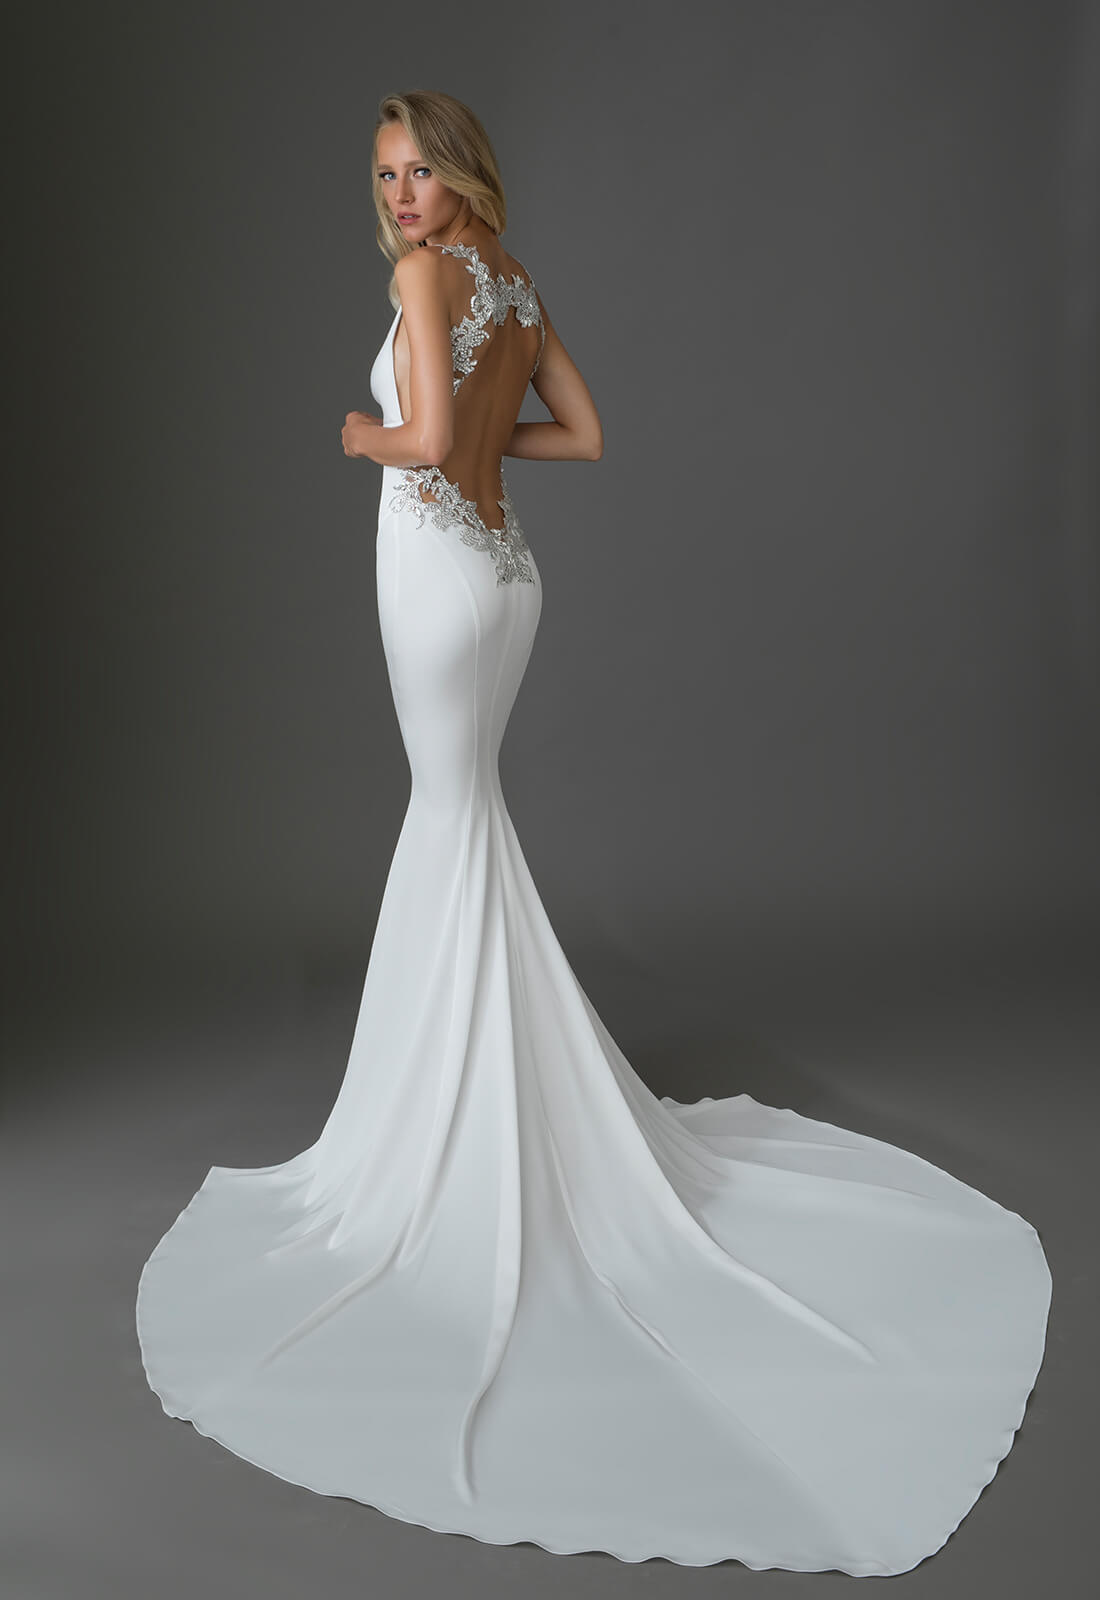 Crepe Gown With V Neck And Embellished Low Keyhole Back